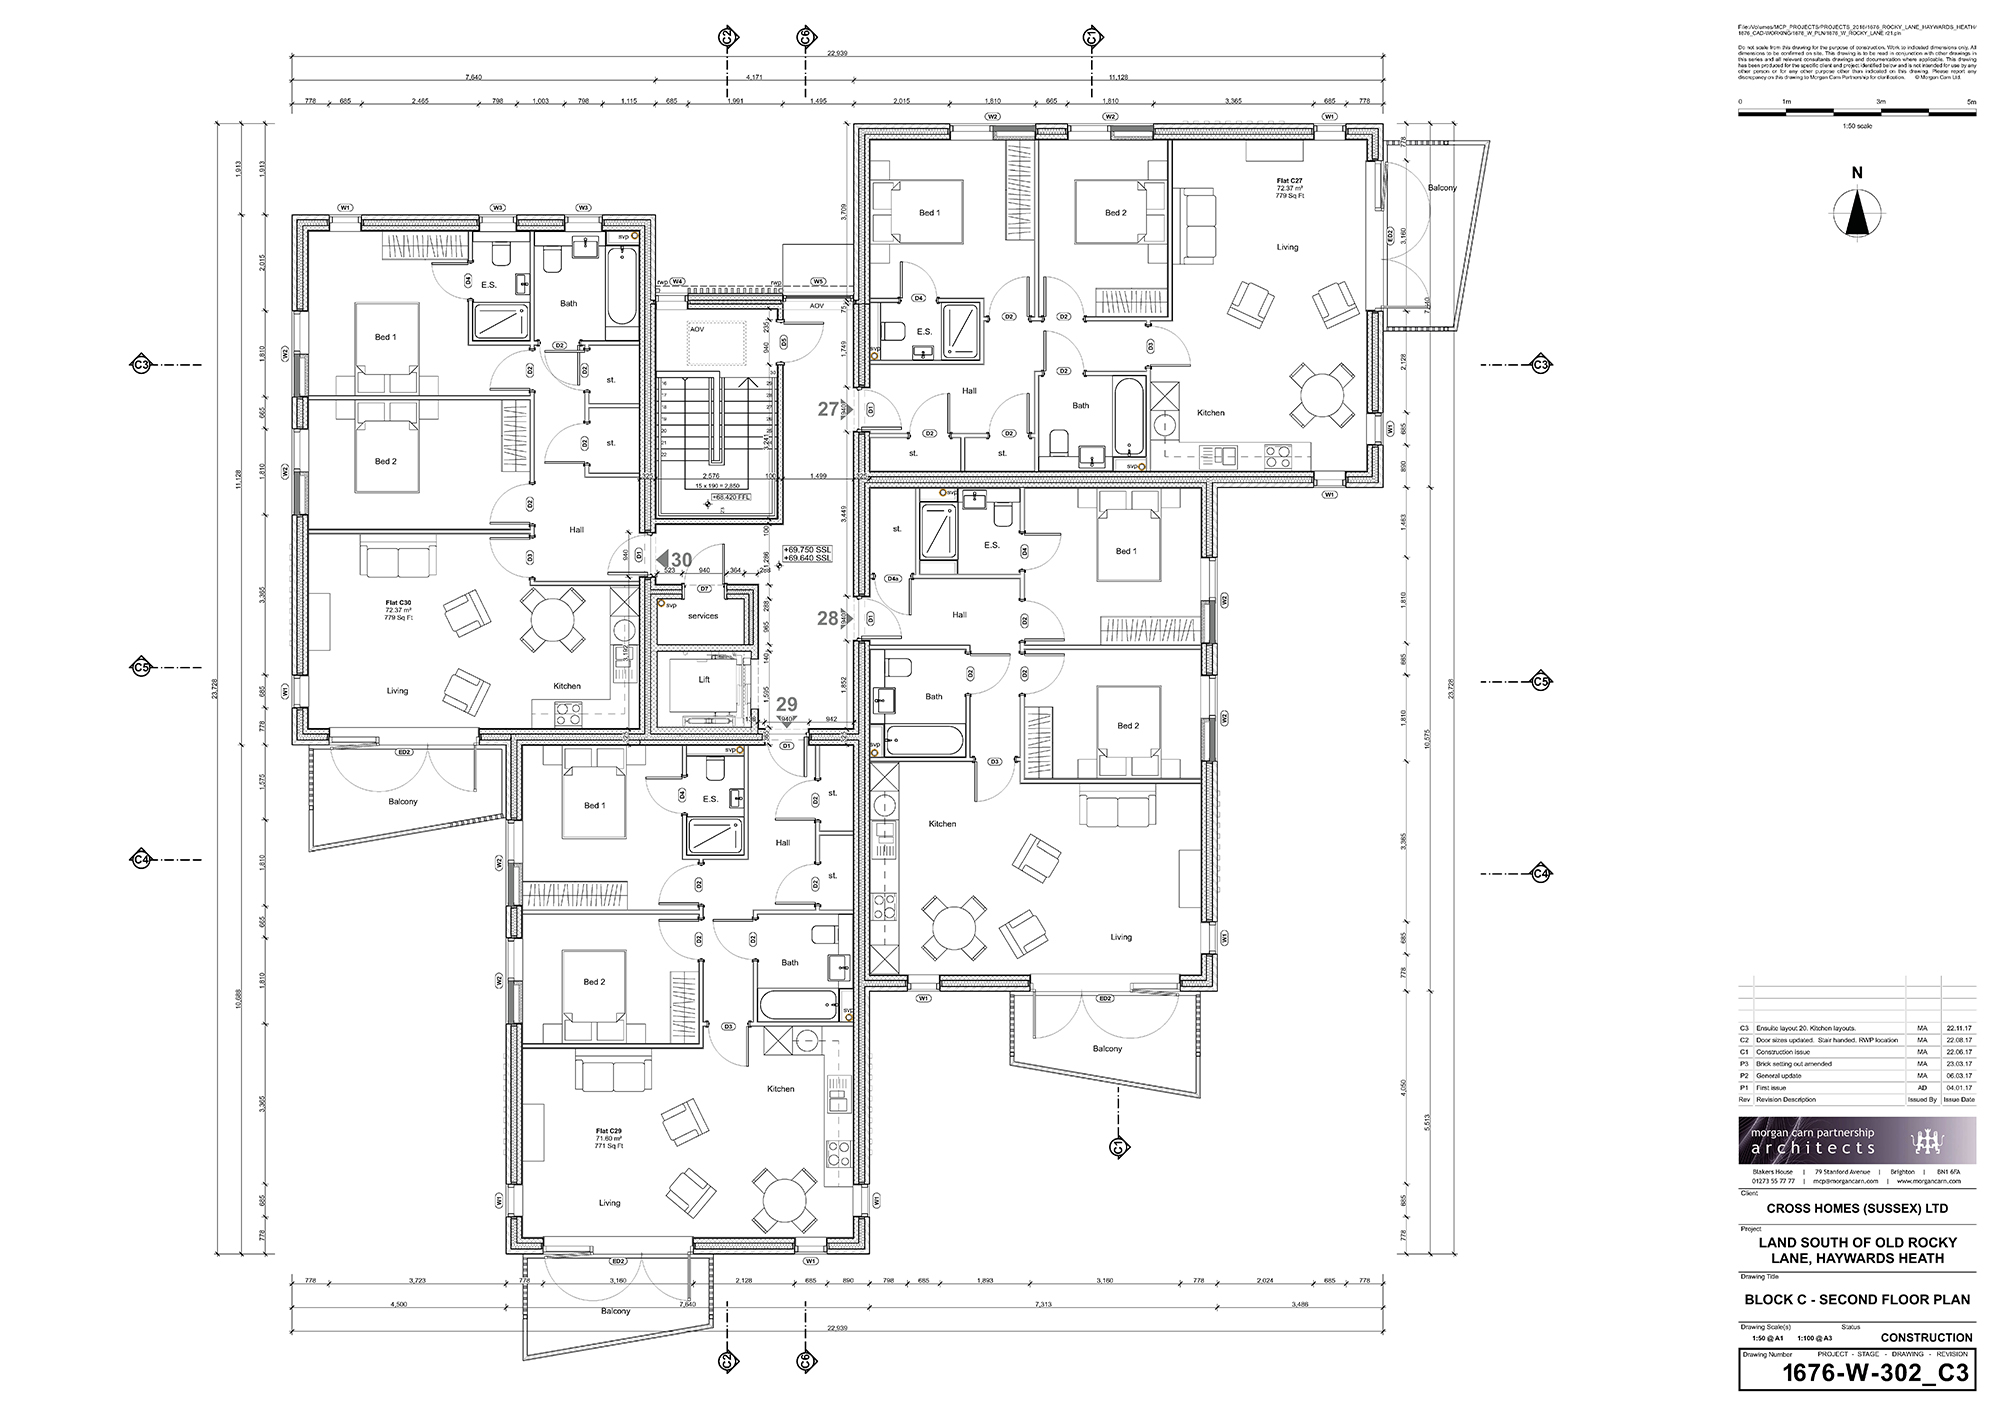 Block C - Second Floor Plan